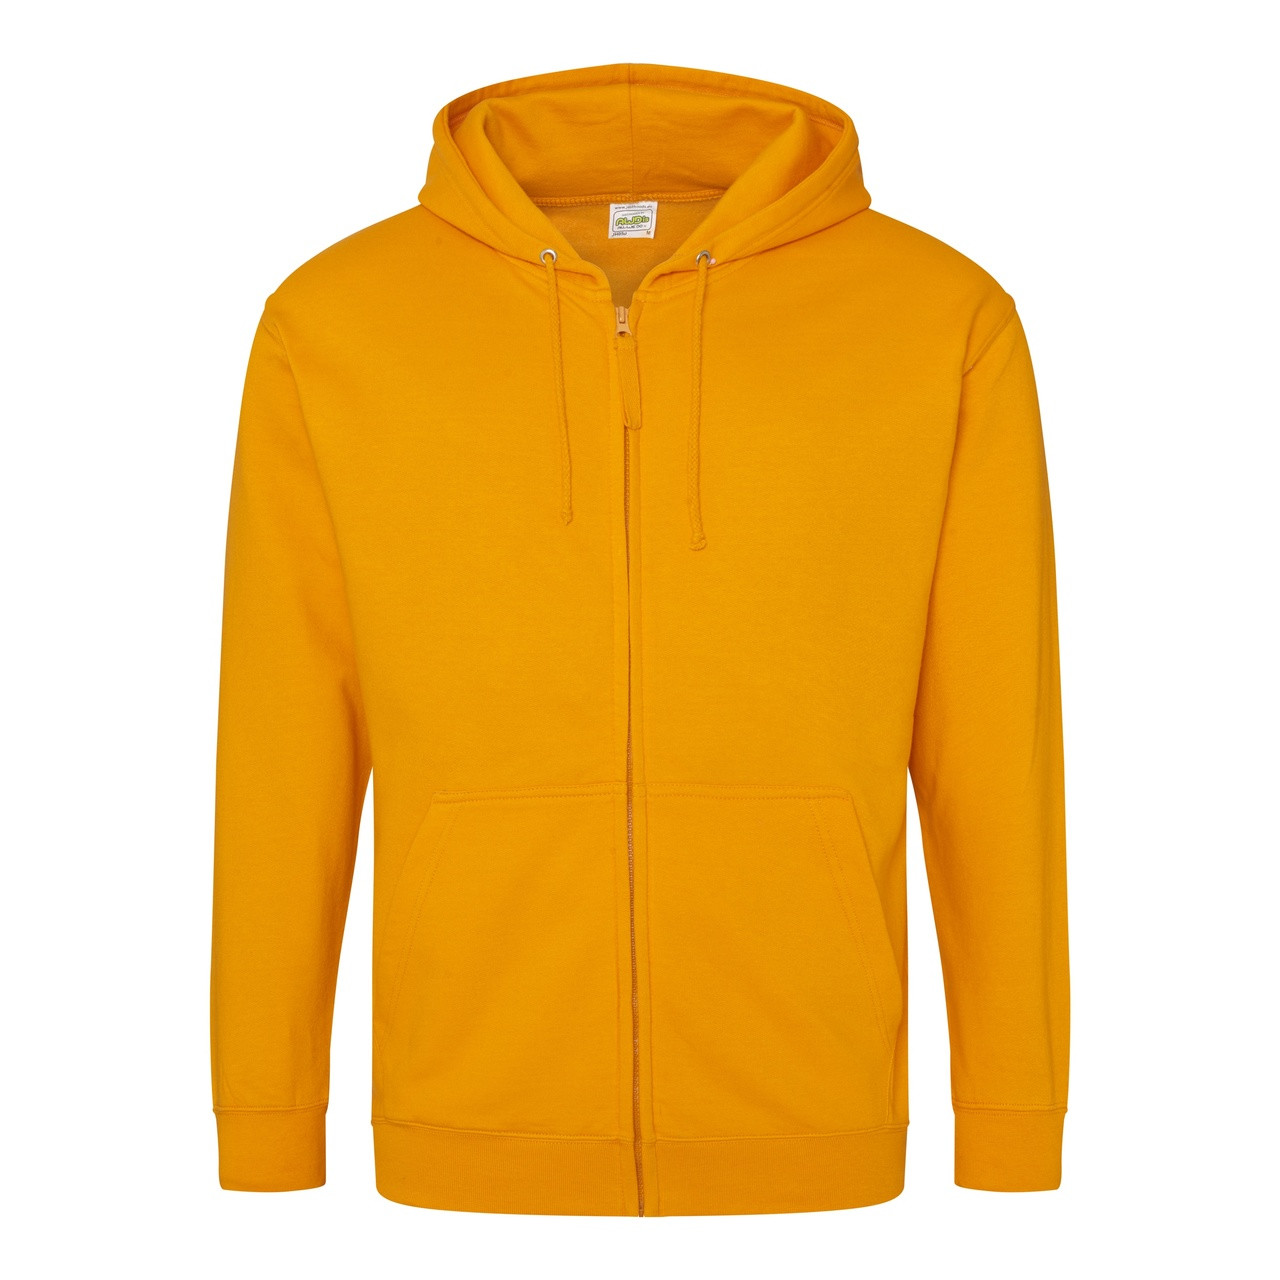 """Quantity Heavy warm Hooded//Hoodie Sweatshirt Jumper XL 46/"""" chest CLEARANCE STOCK"""